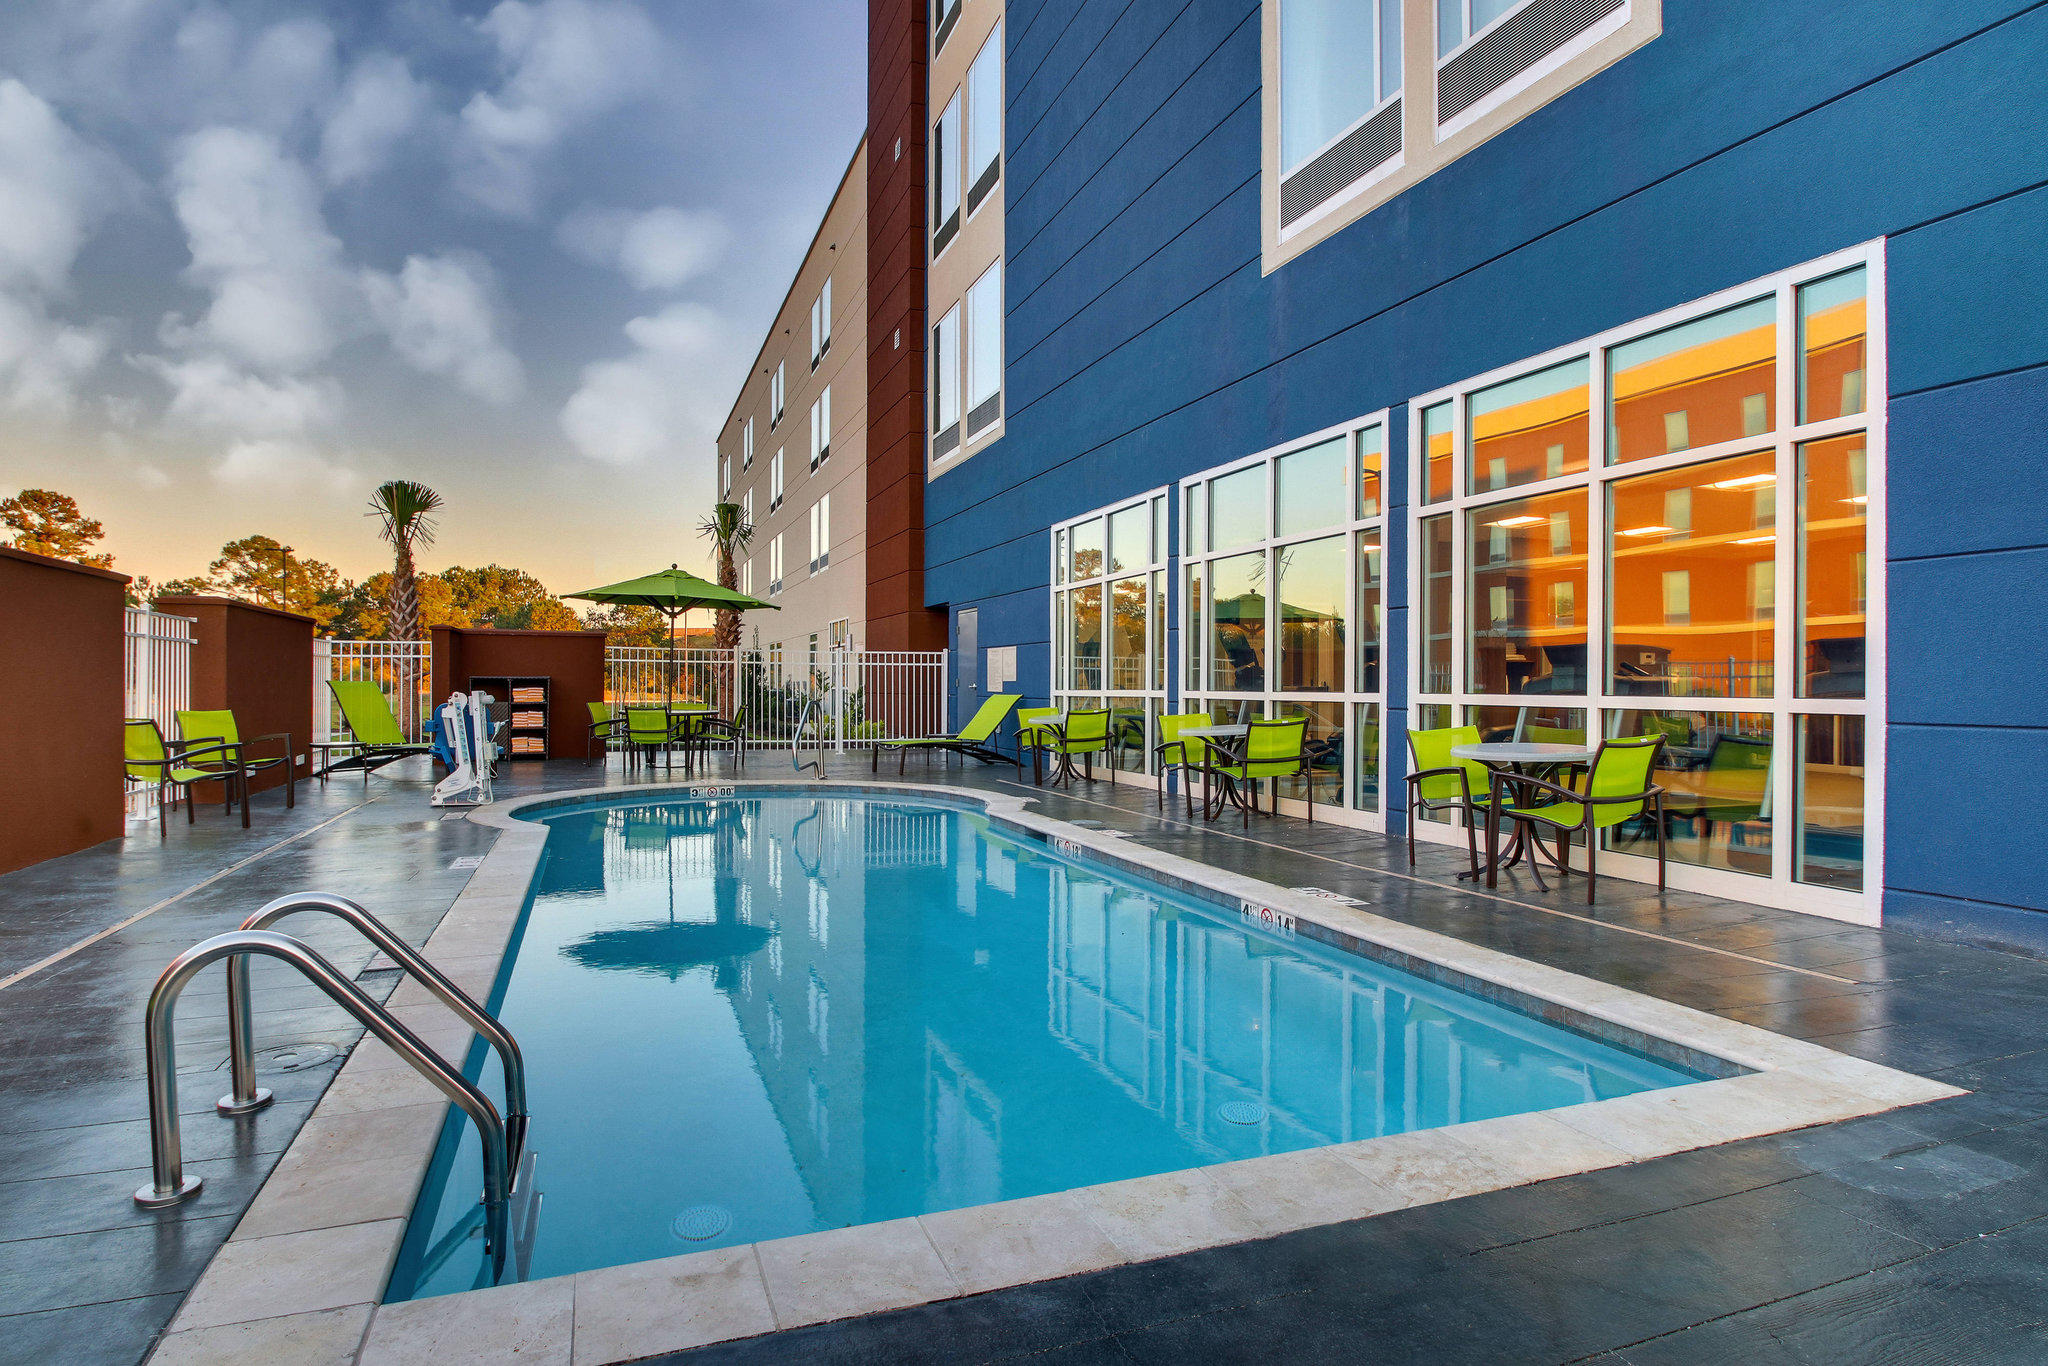 SpringHill Suites by Marriott Gulfport I-10